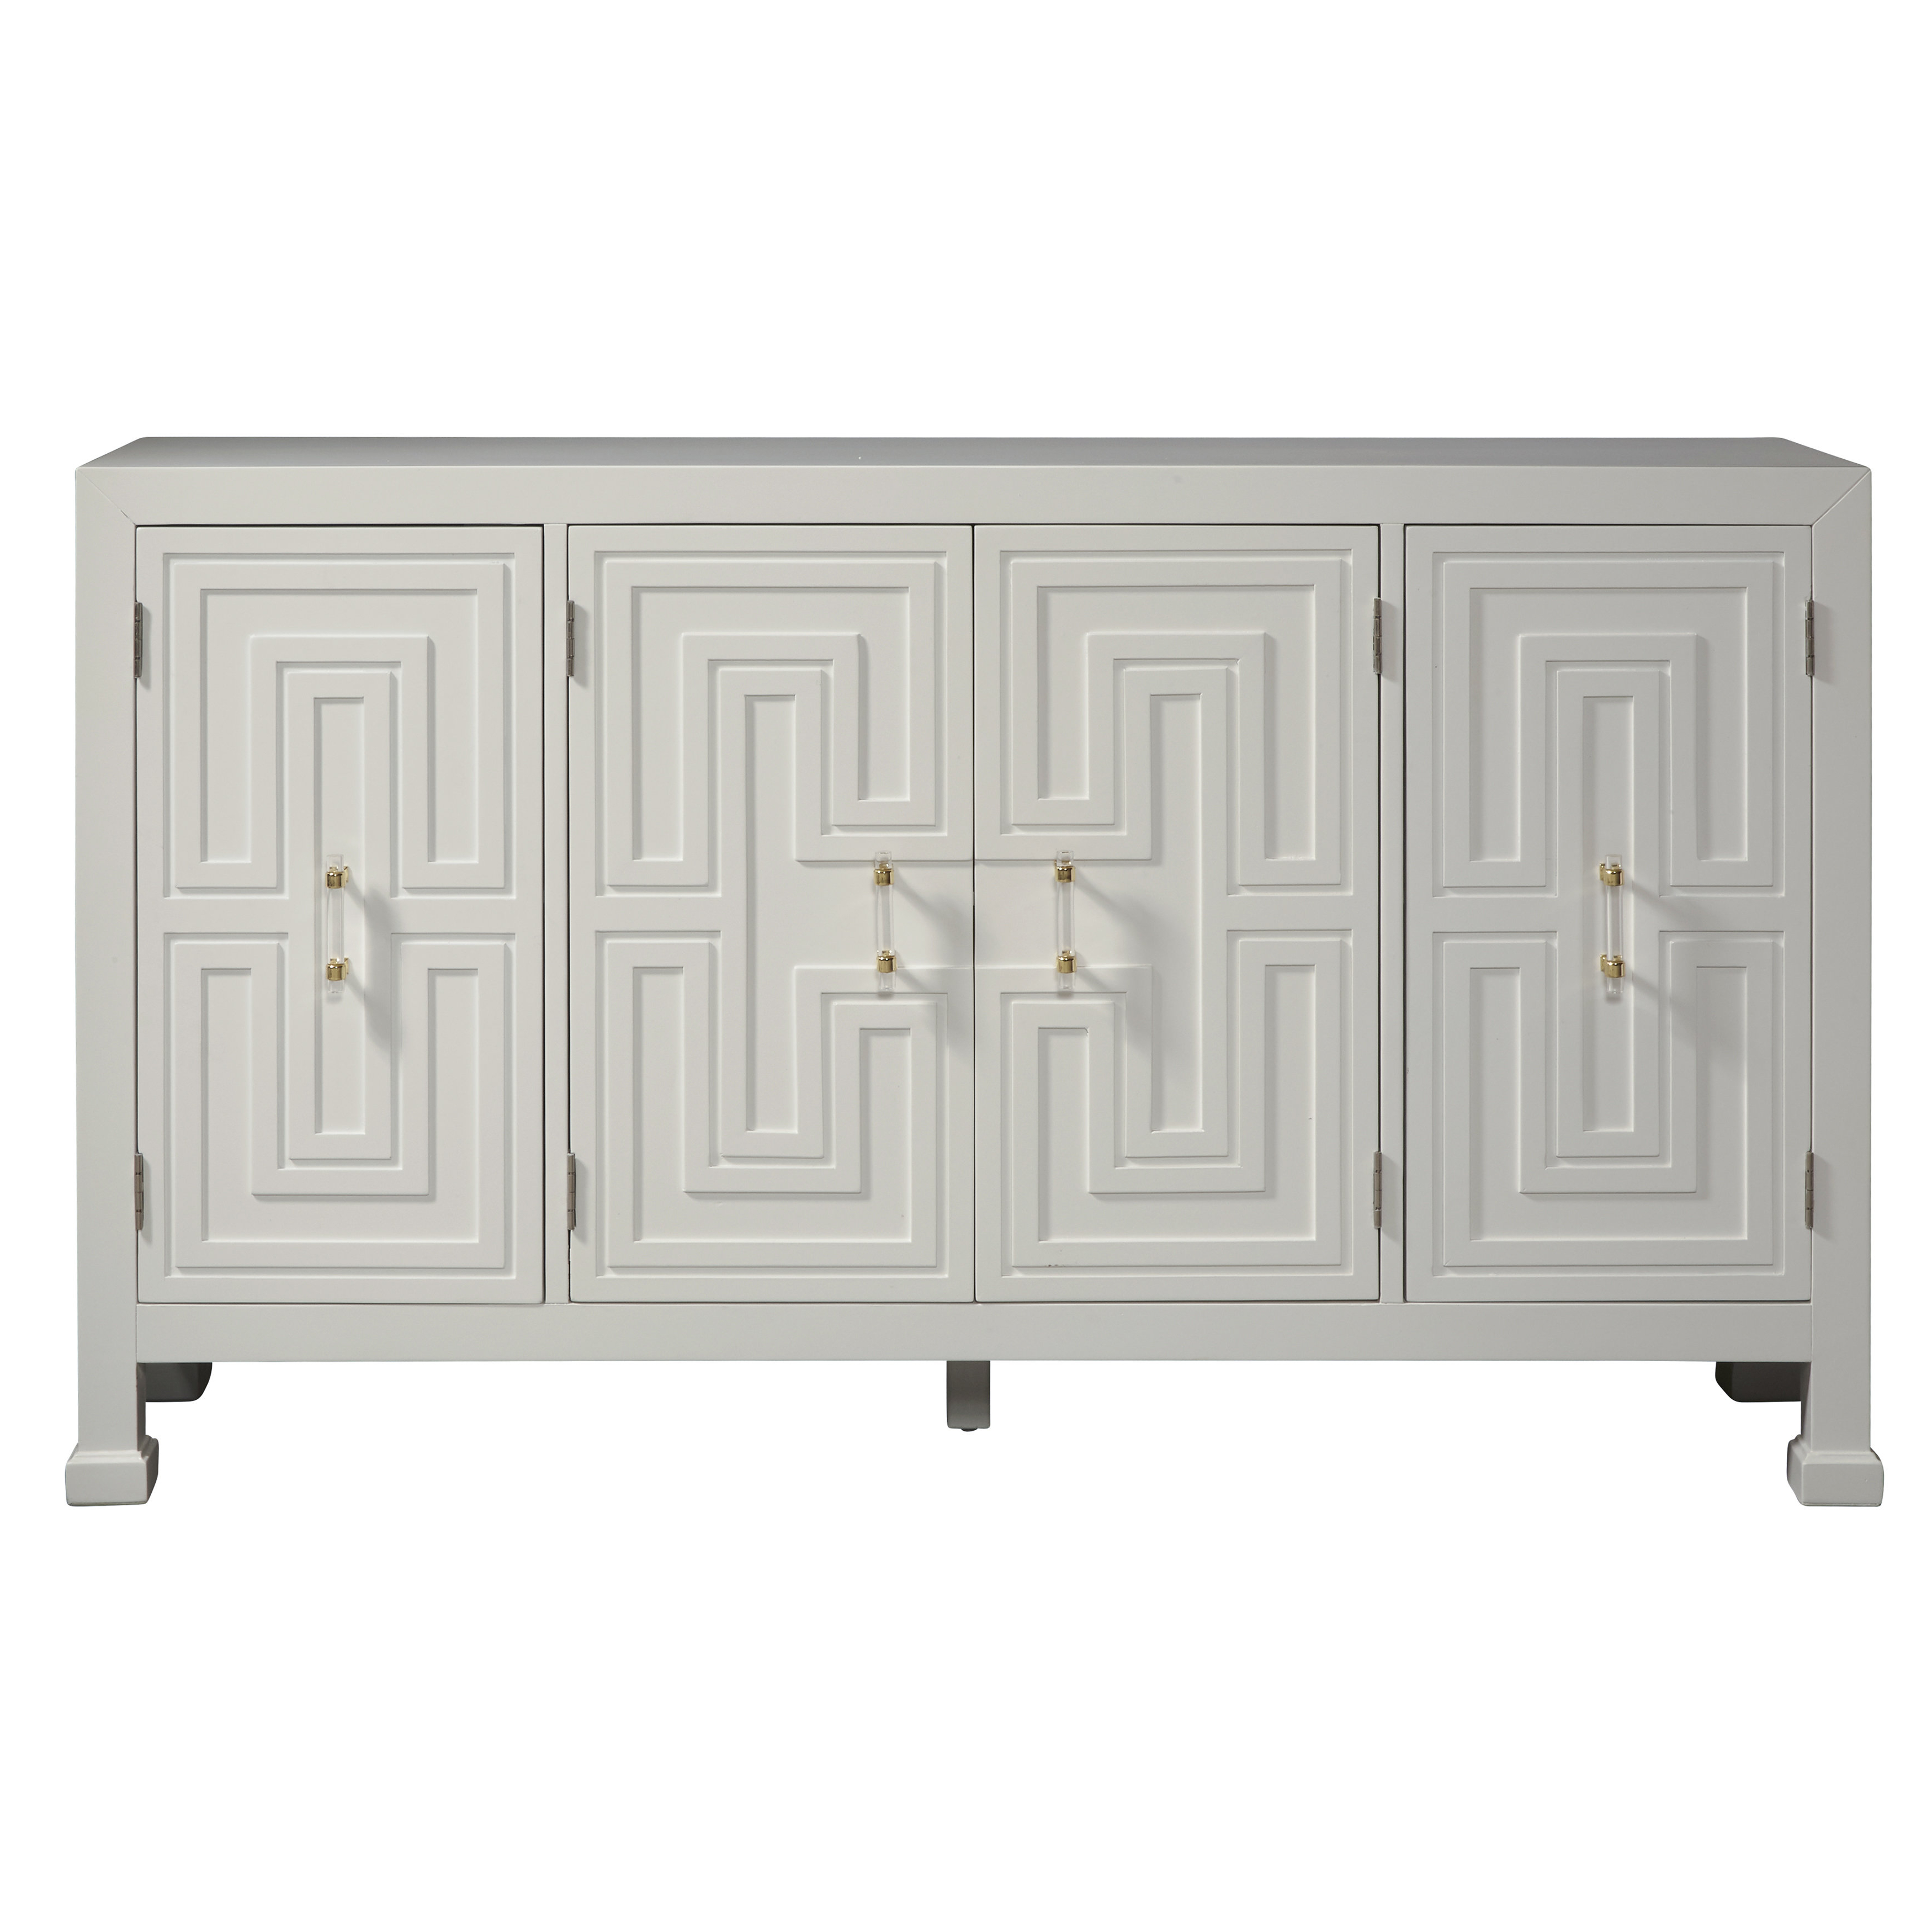 Lainey Credenzas Within Most Up To Date Lainey Credenza (Gallery 1 of 20)